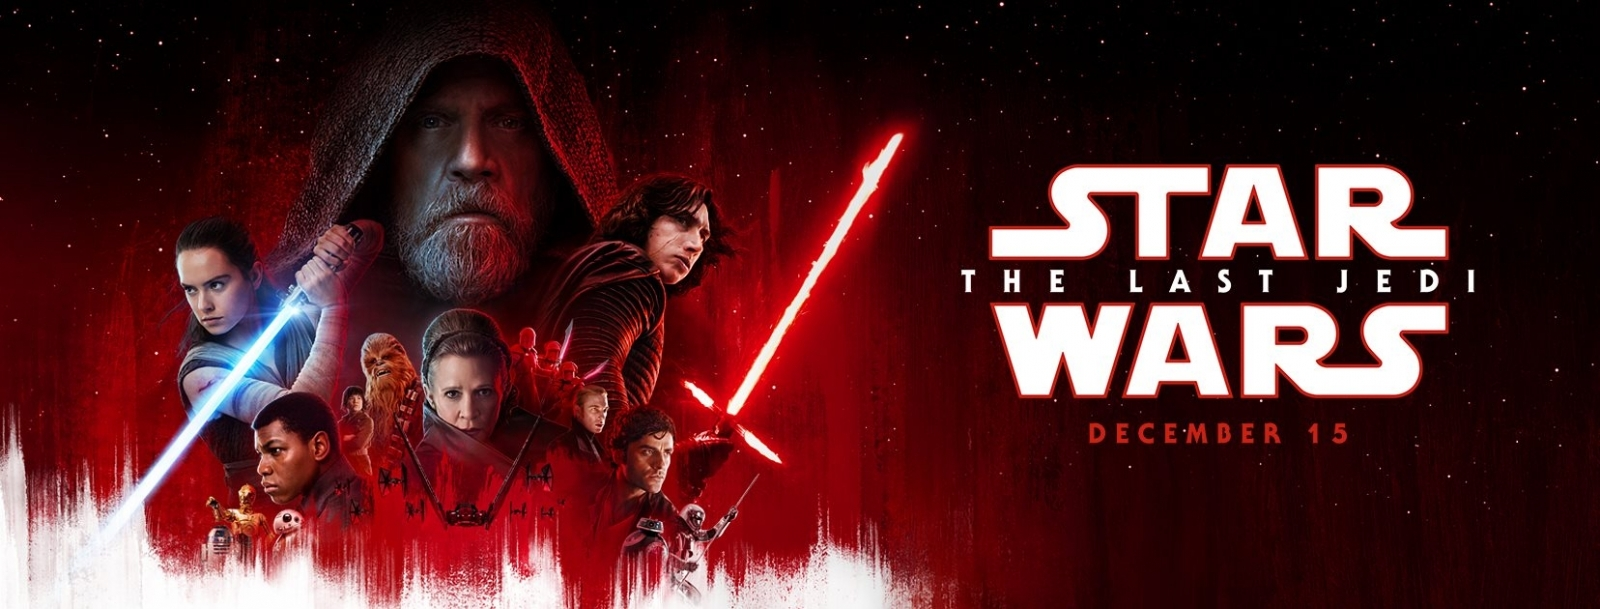 Star Wars The Last Jedi Here Is Why Kylo Ren Killed Han Solo